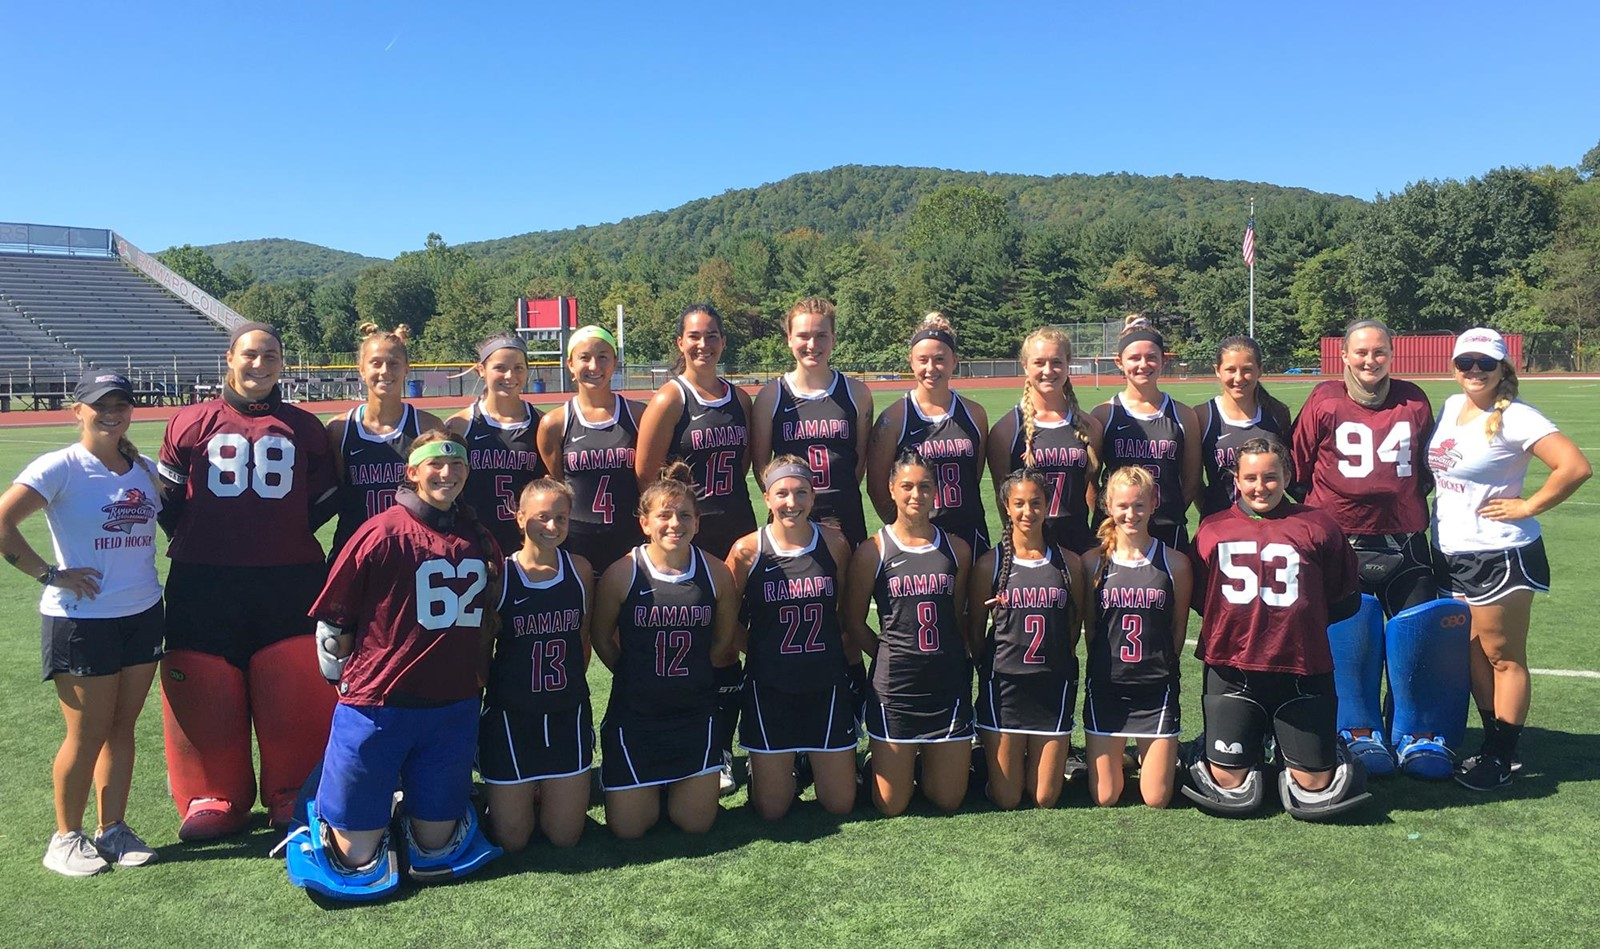 new concept 5c96a ca9e2 2017 Field Hockey Roster - Ramapo College of New Jersey ...